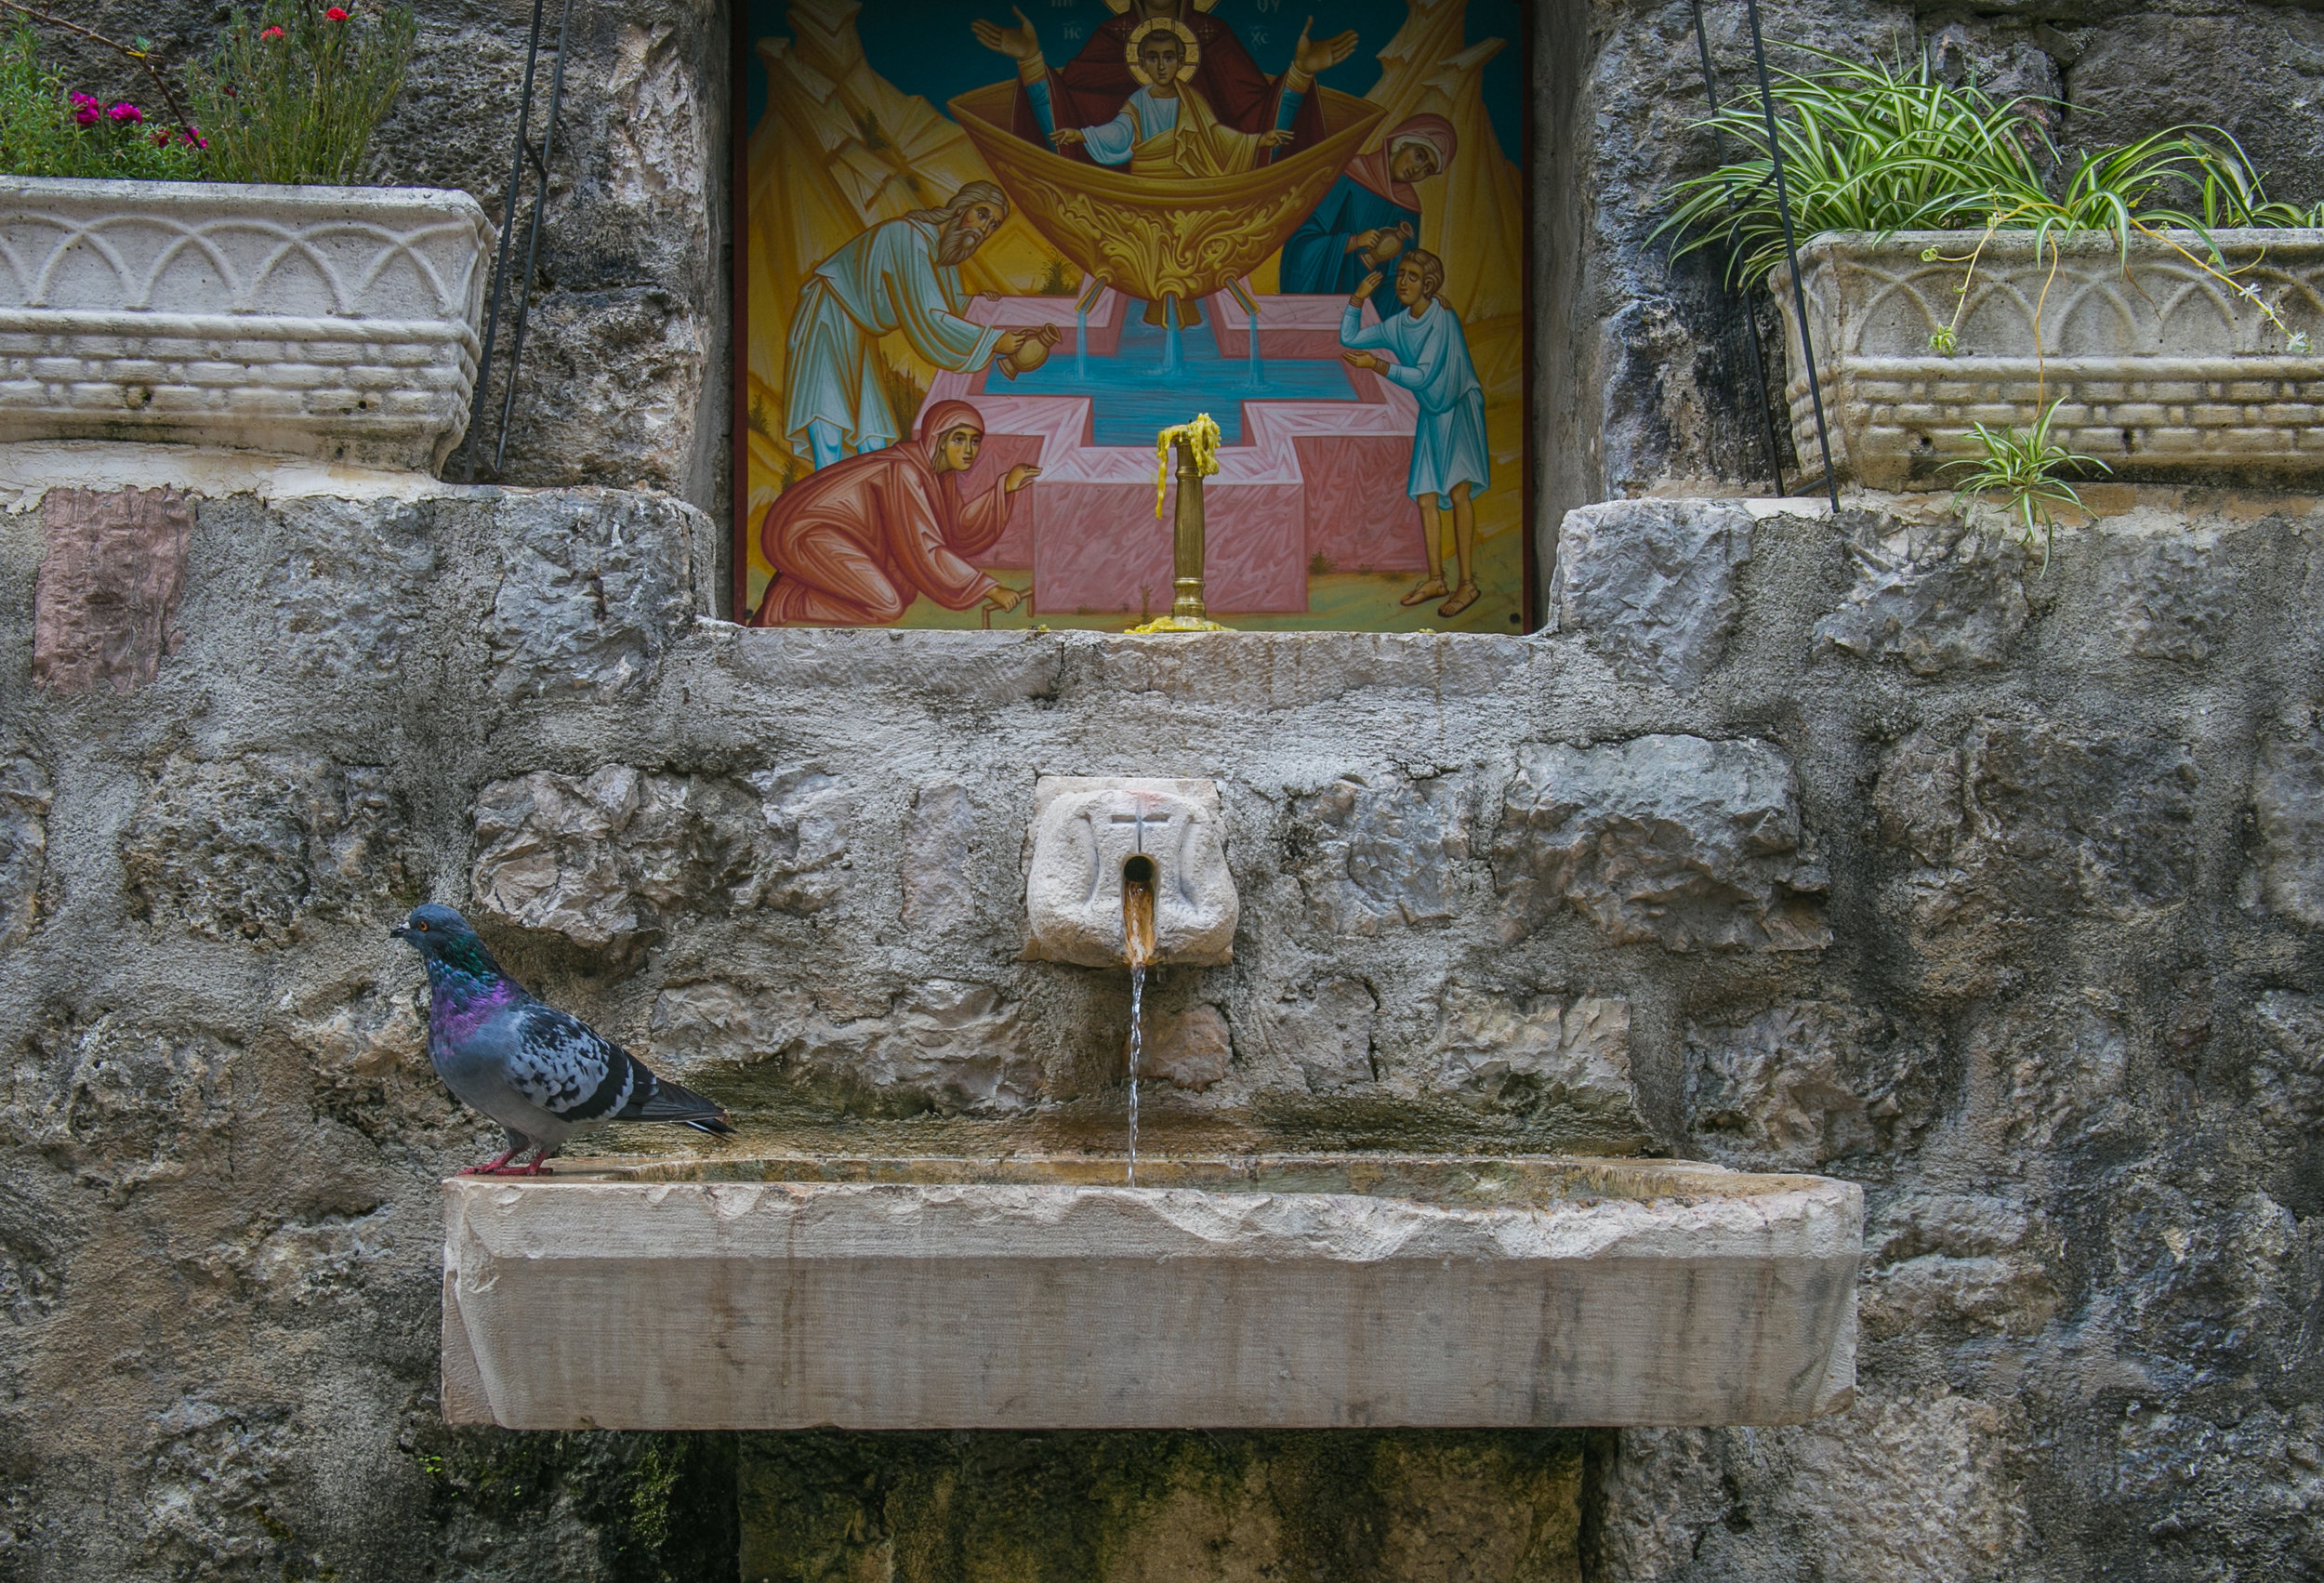 A spring containing holy water behind a church in the Old City of Kotor, Montenegro.